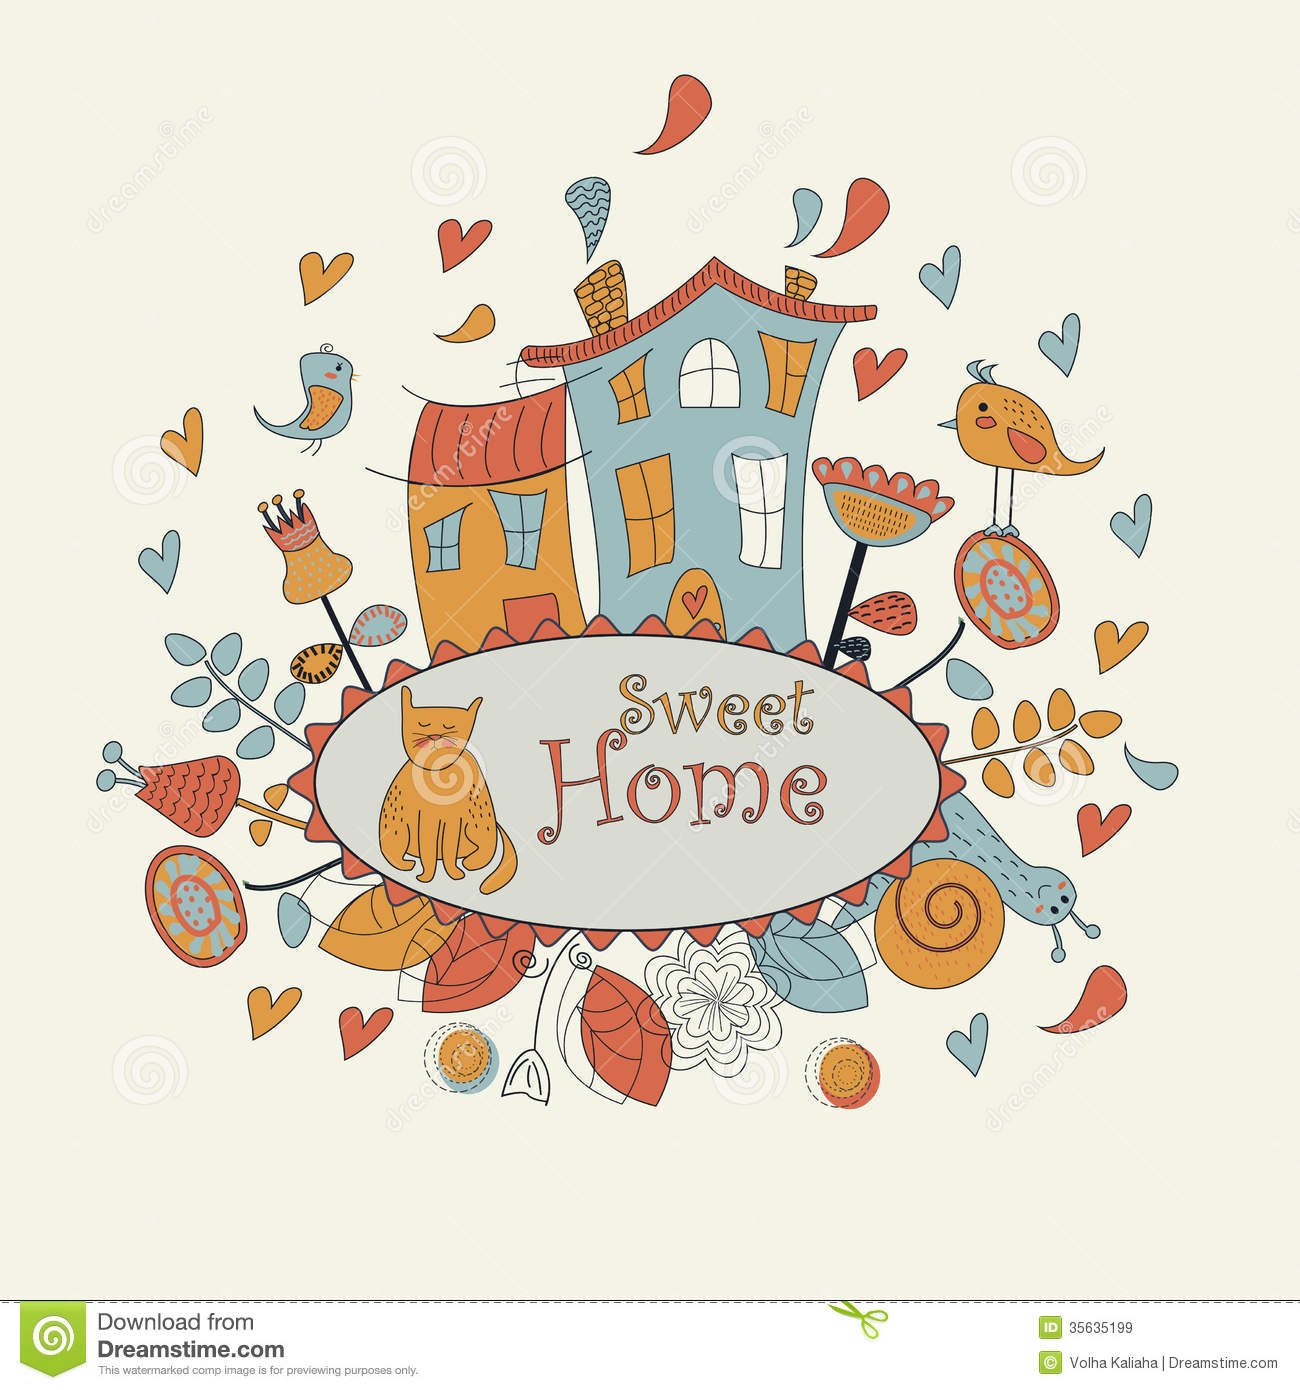 Download Free Sweet Home 3d Sweet Home 3d 4 1 Download: Sweet Home Background Royalty Free Stock Images